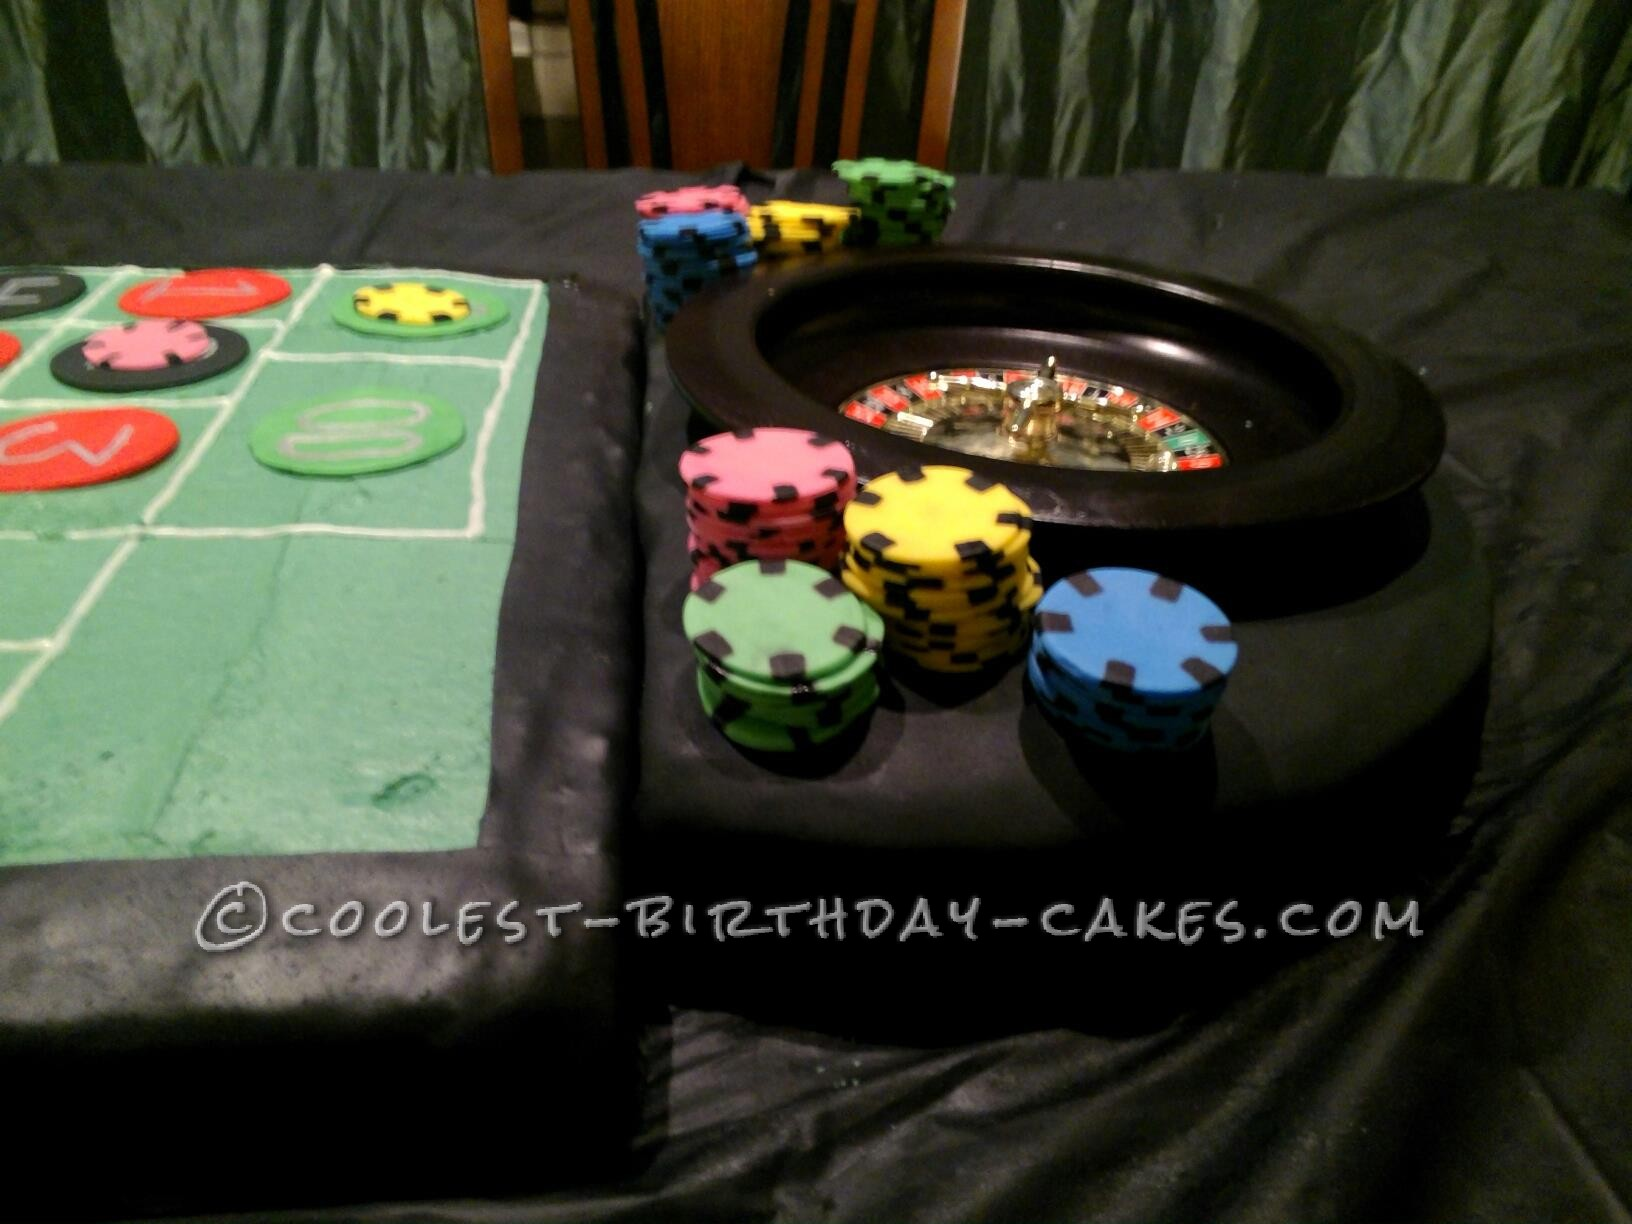 Coolest Roulette Birthday Cake - 5 Feet Long!